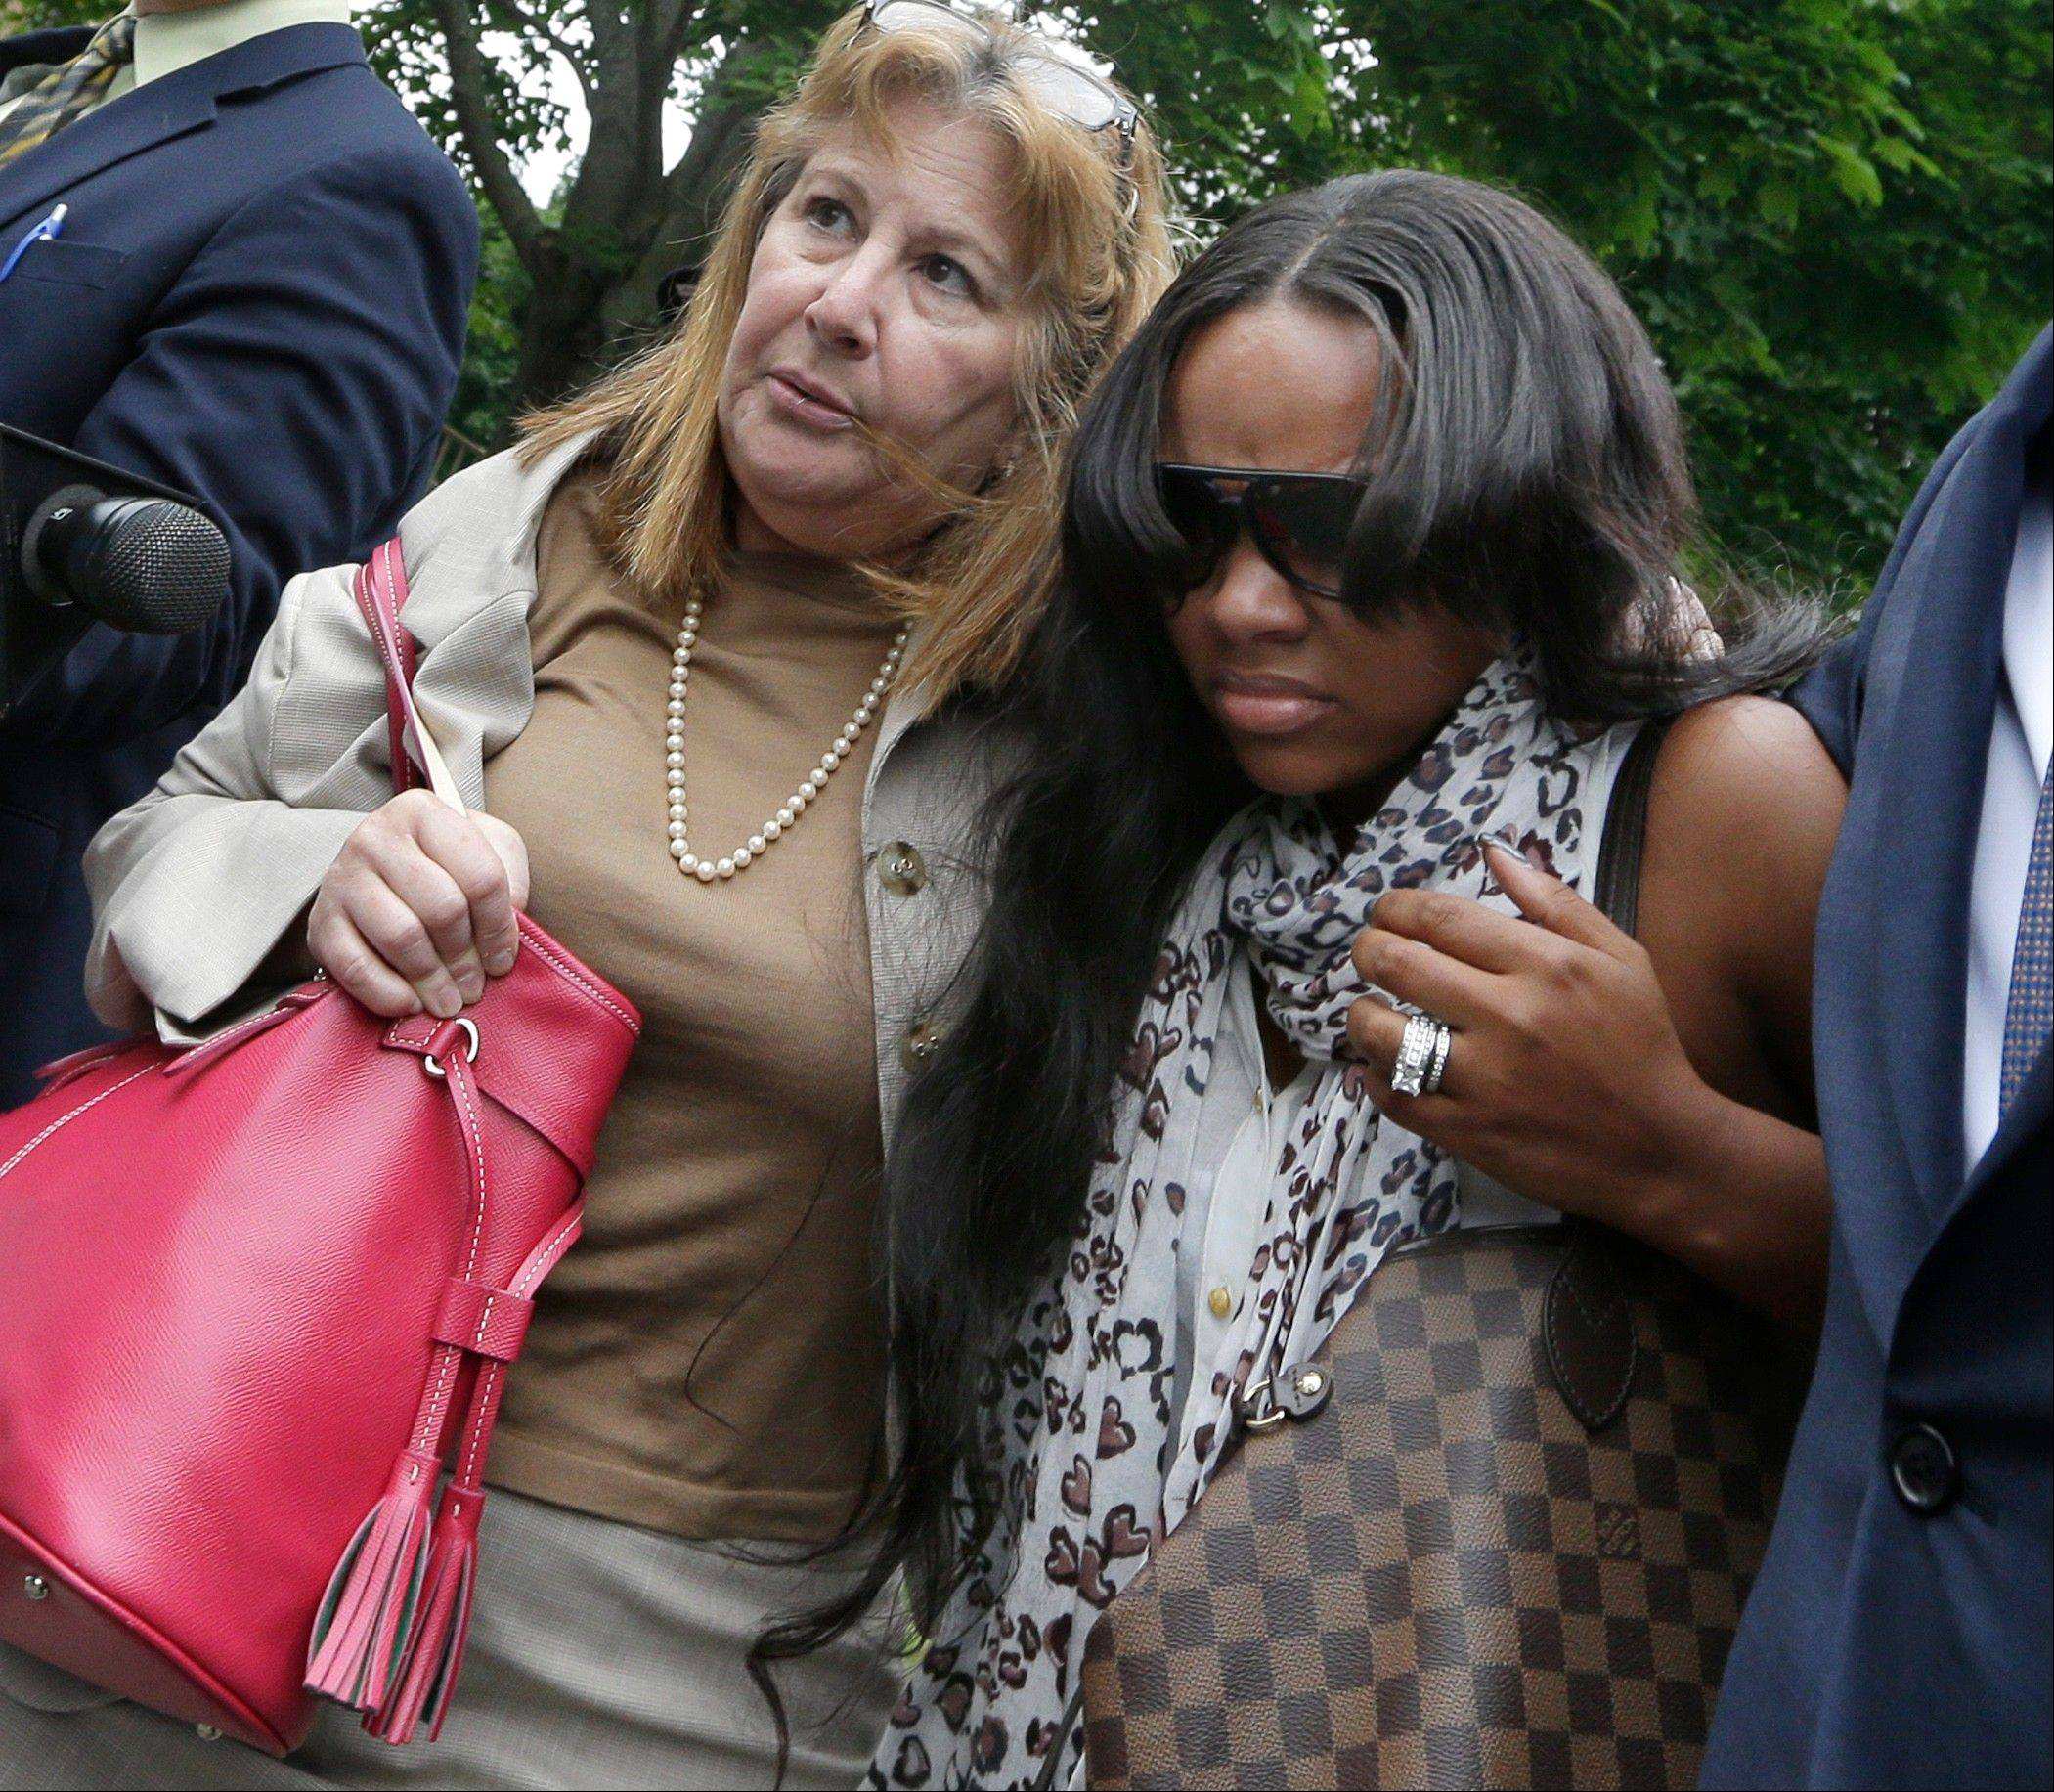 Shayanna Jenkins, right, fiancee of former New England Patriots football player Aaron Hernandez, is escorted by attorney Janice Bassil after a bail hearing in Fall River Superior Court Thursday, June 27, 2013 in Fall River, Mass. Hernandez, charged with murdering Odin Lloyd, a 27-year-old semipro football player, was denied bail.